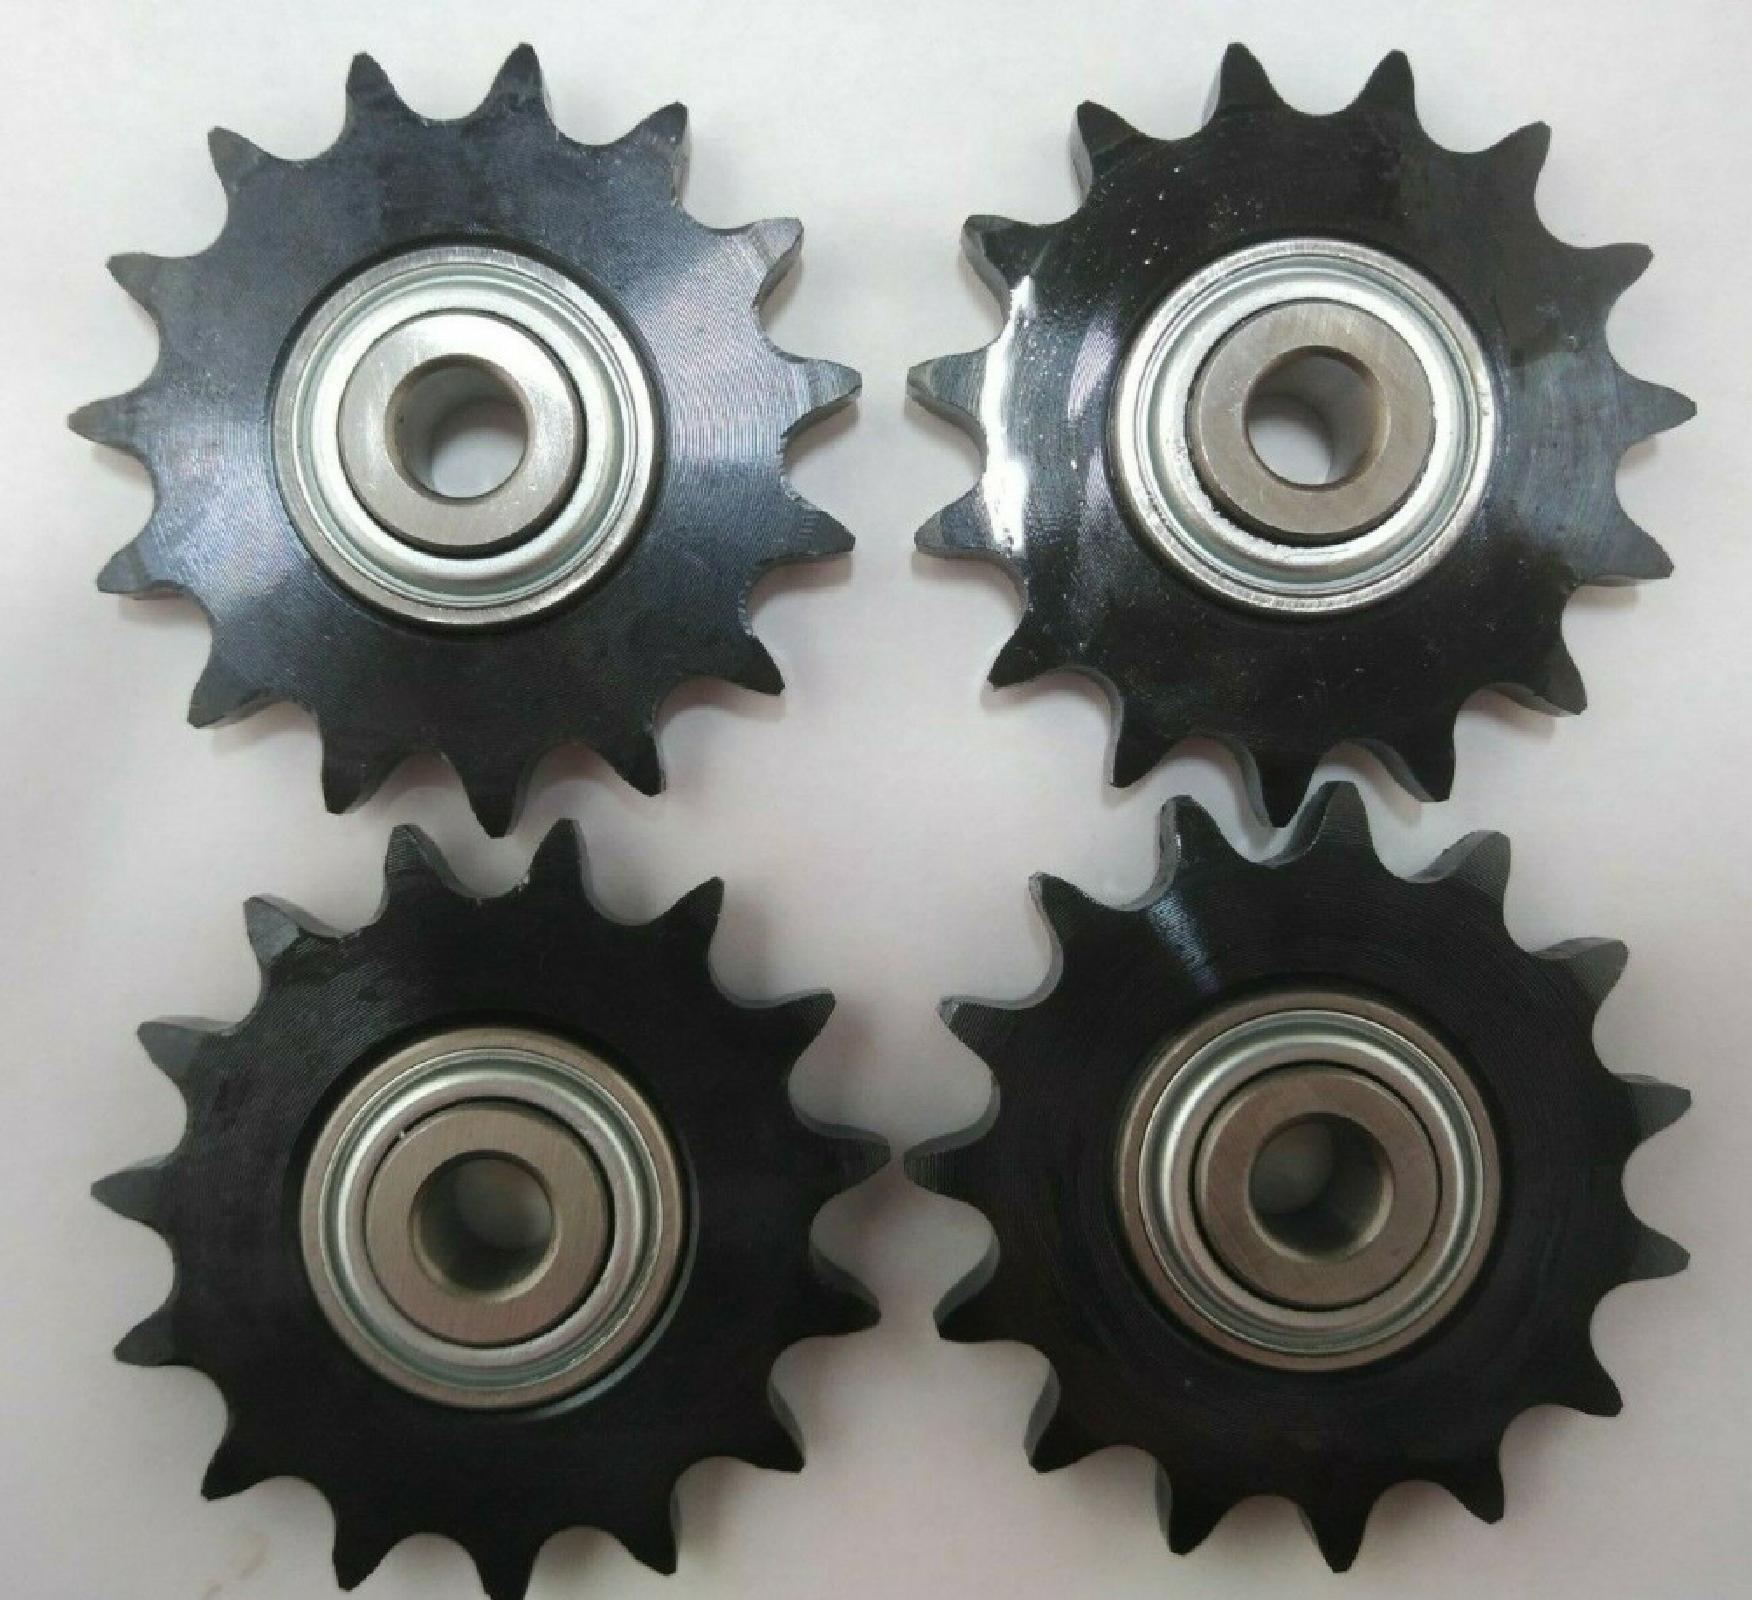 4 pk roller chain idler sprocket replaces 126-9274 L50568